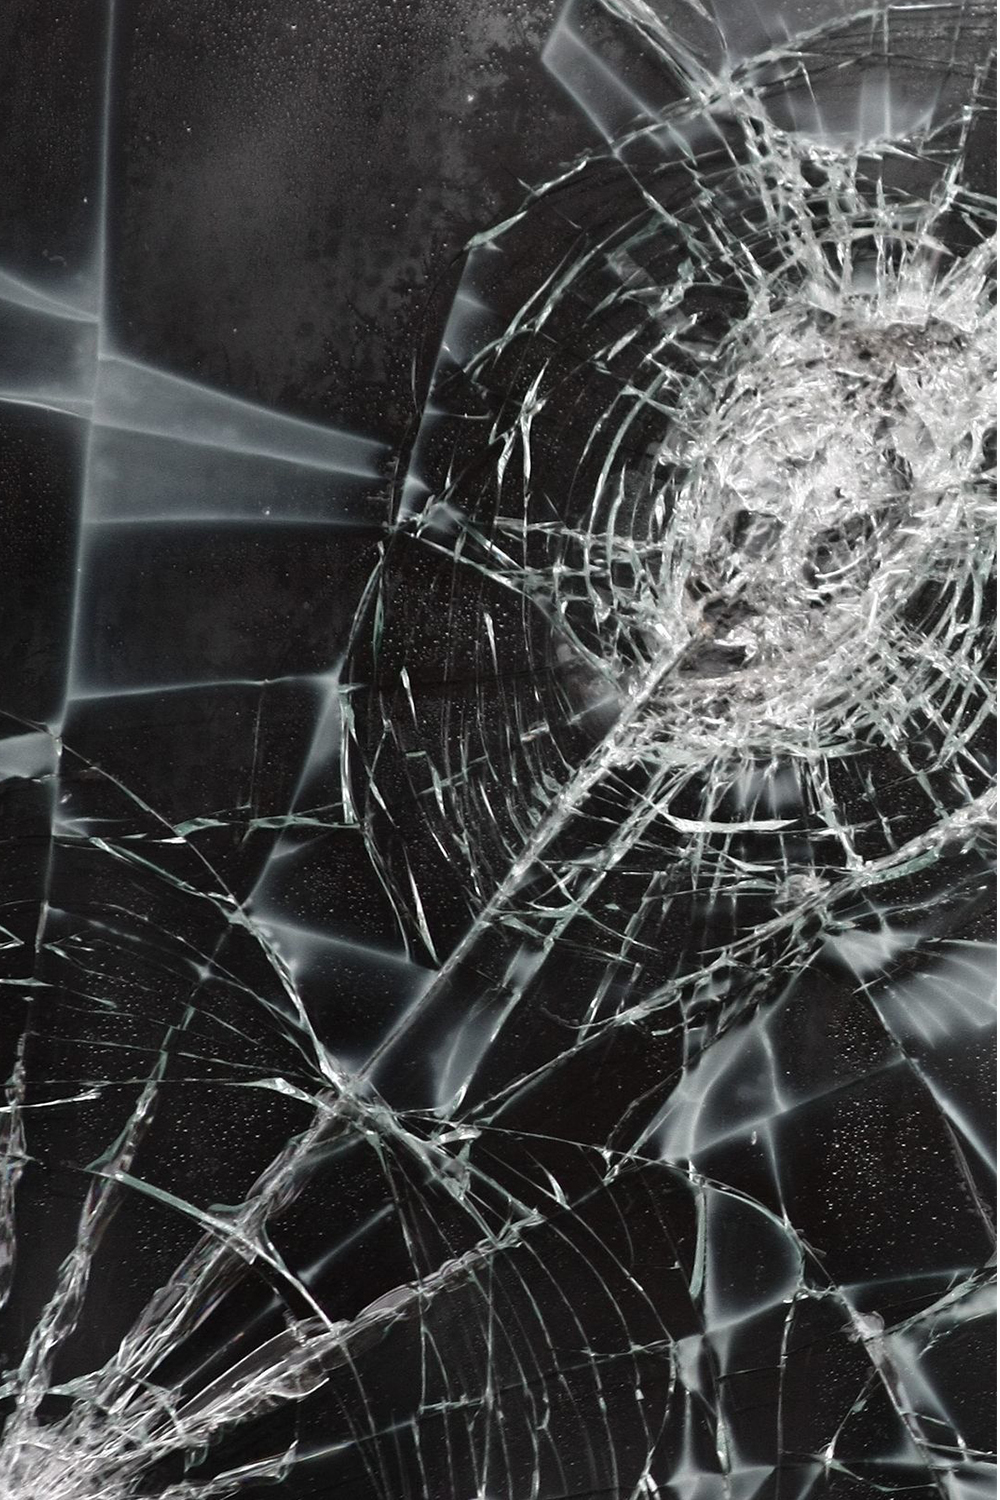 Broken Screen Wallpaper 4k Download In 2020 Broken Screen